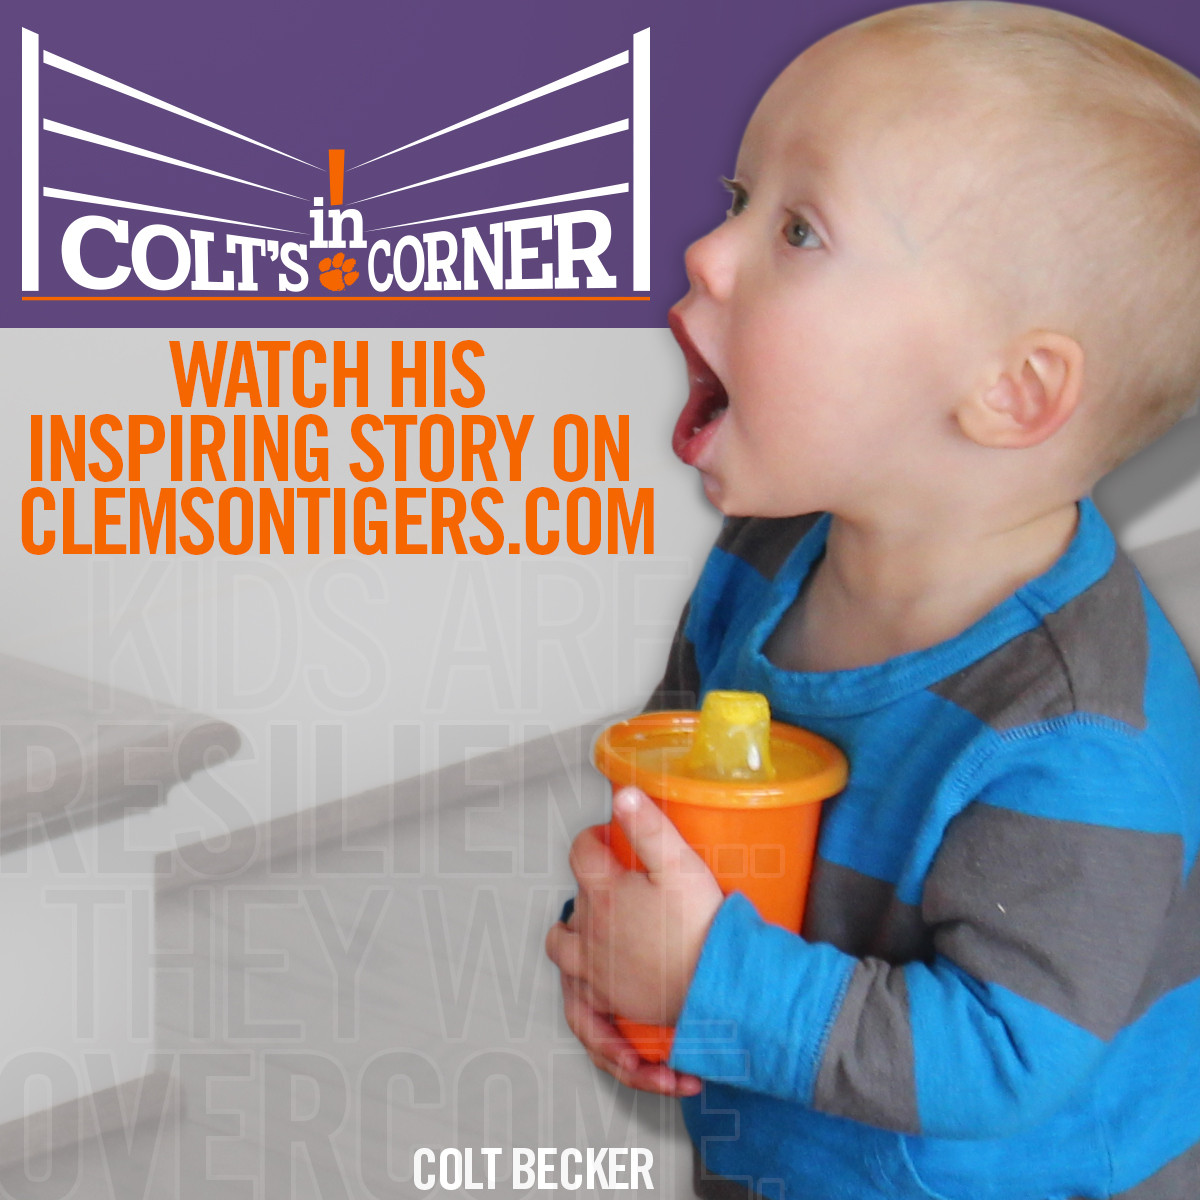 Documentary: In Colt's Corner